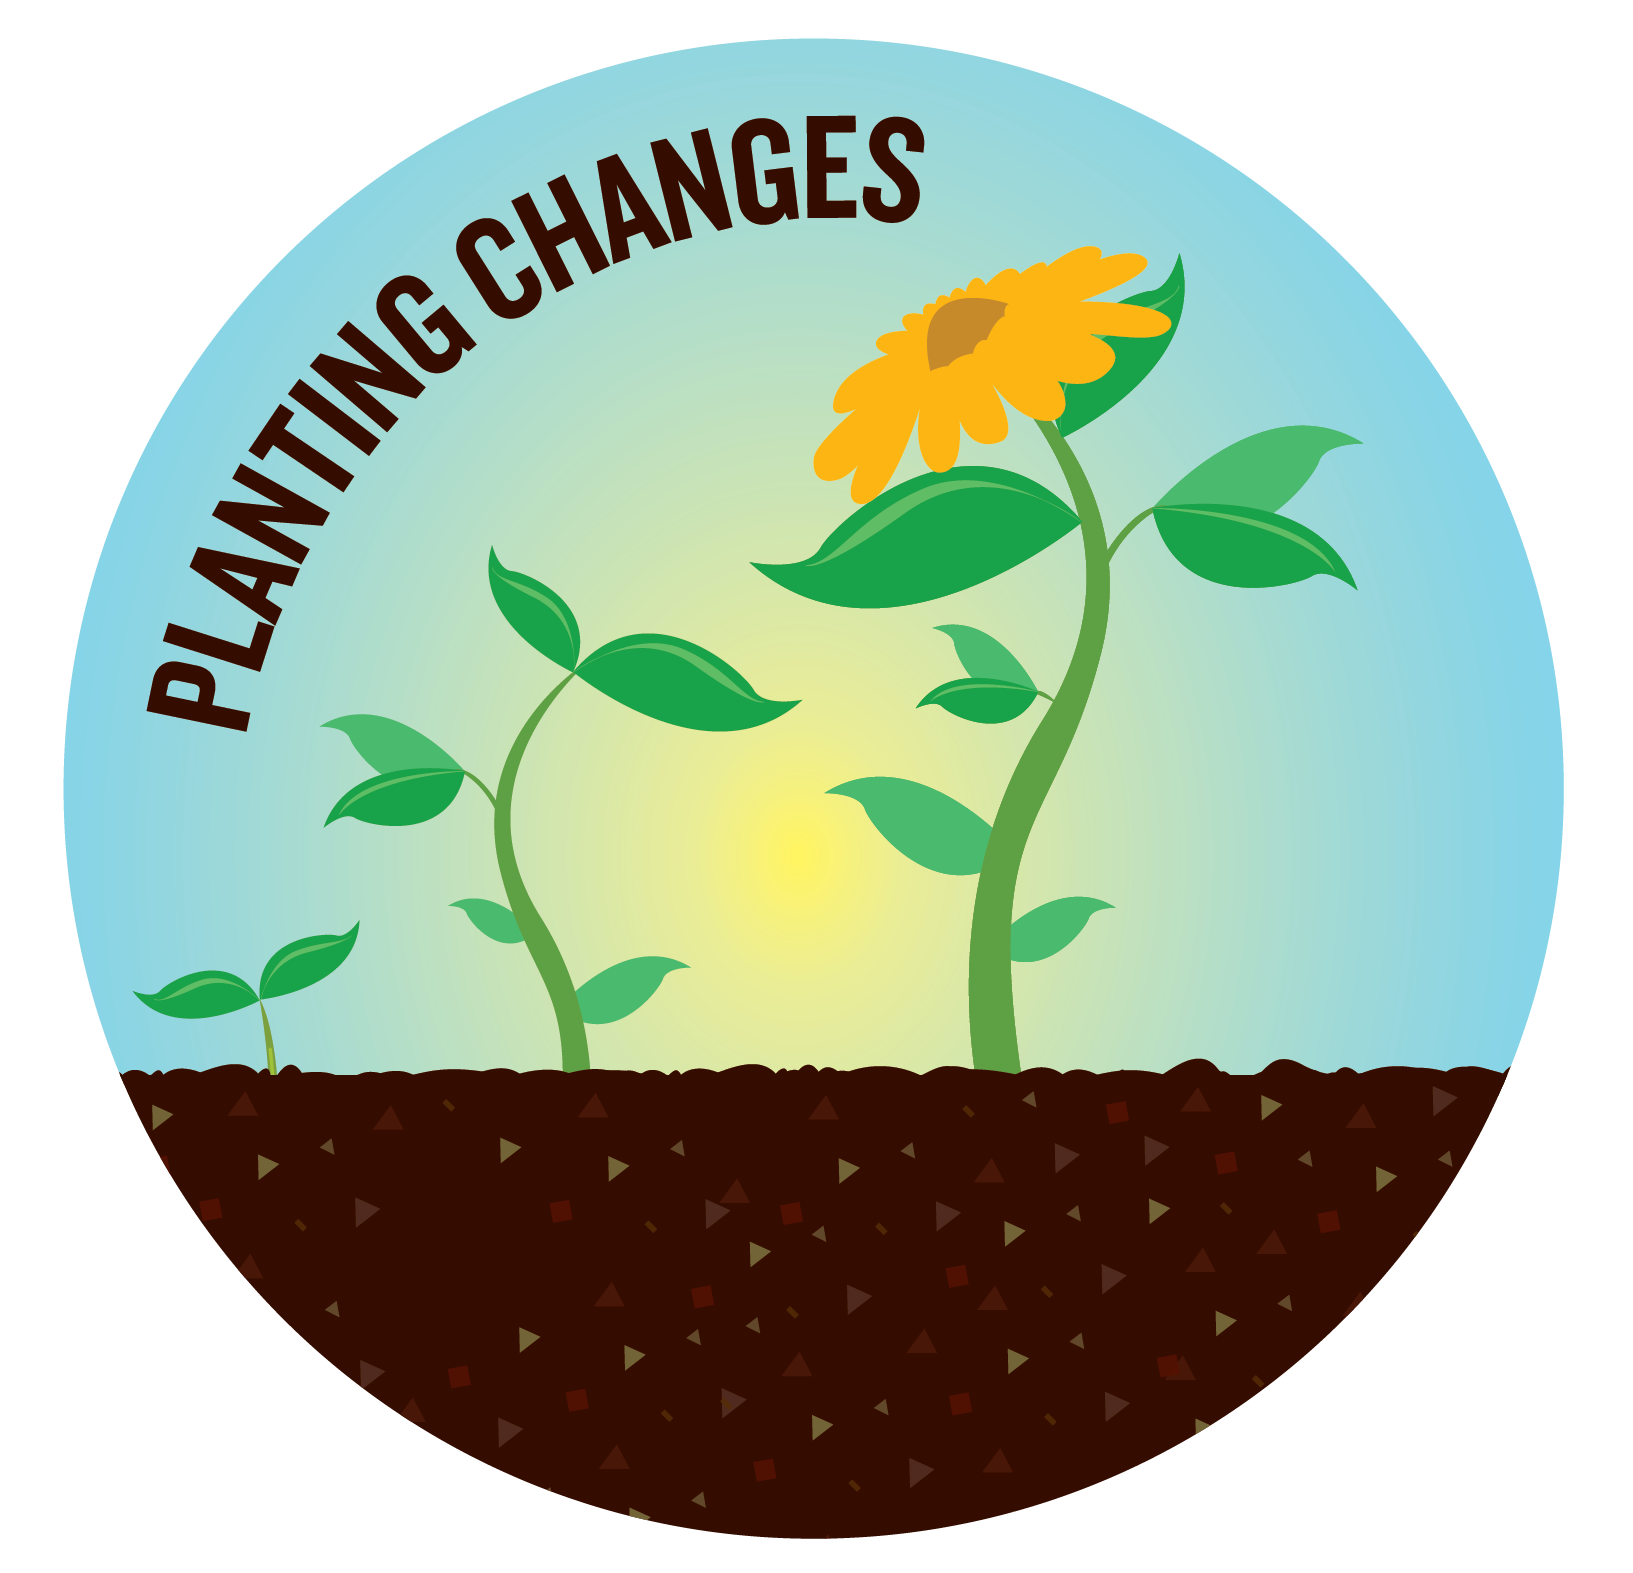 Planting Changes